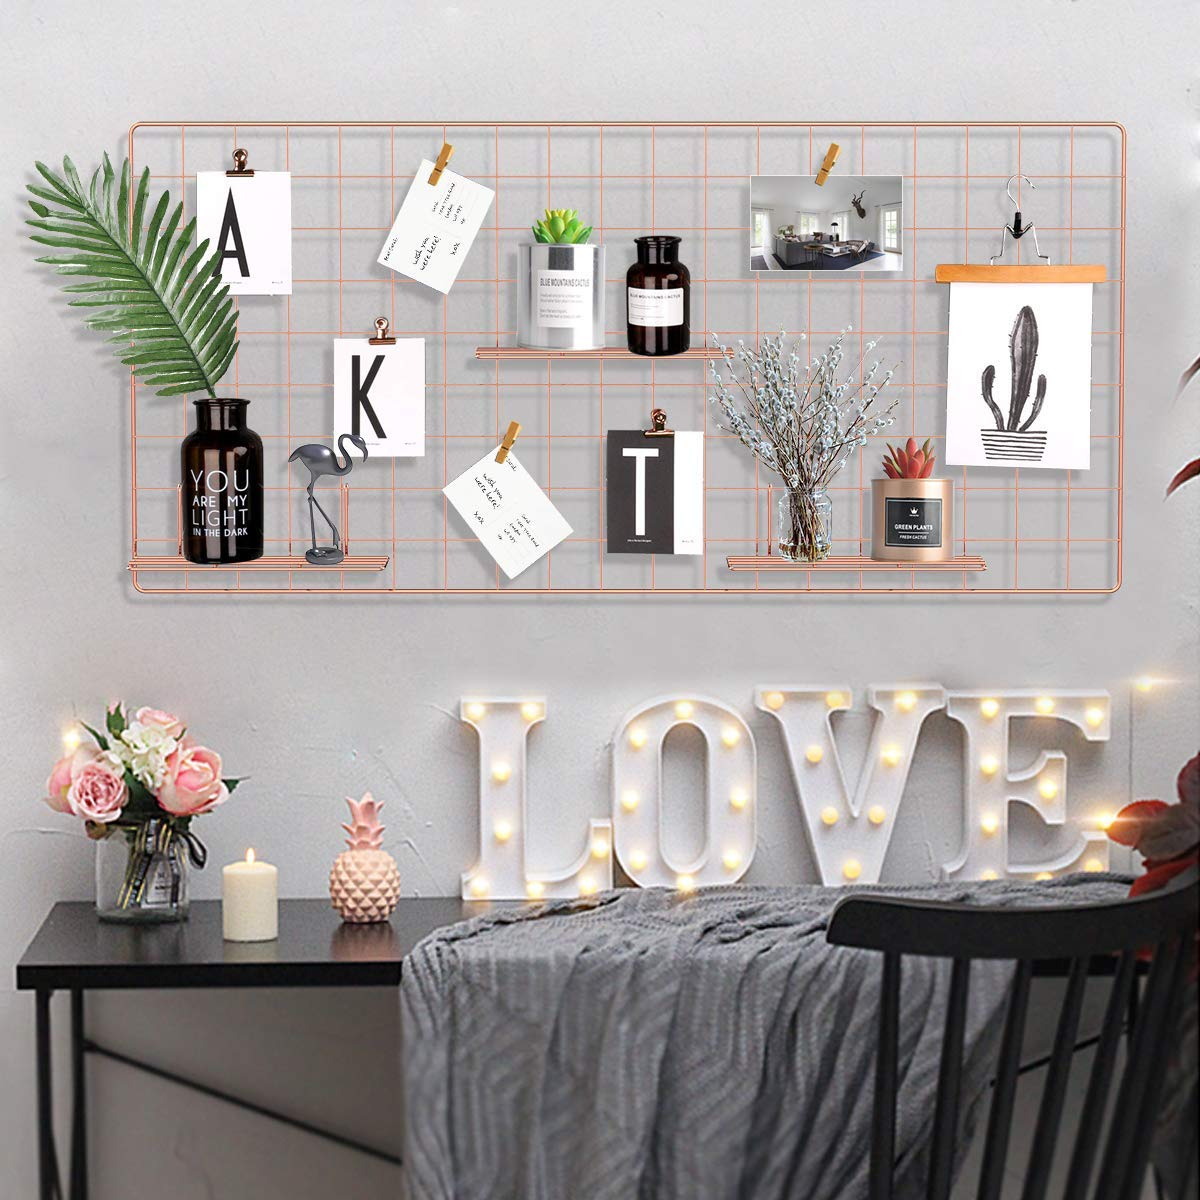 Pulatree Grid Photo Wall(Ultra Large), Wire Wall Grid Panel for Photo Hanging Display Metal Grid Wall Decor Organizer Mesh Panels Display Wall Storage 37.4 x 17.7 inch - Rose Gold by Pulatree